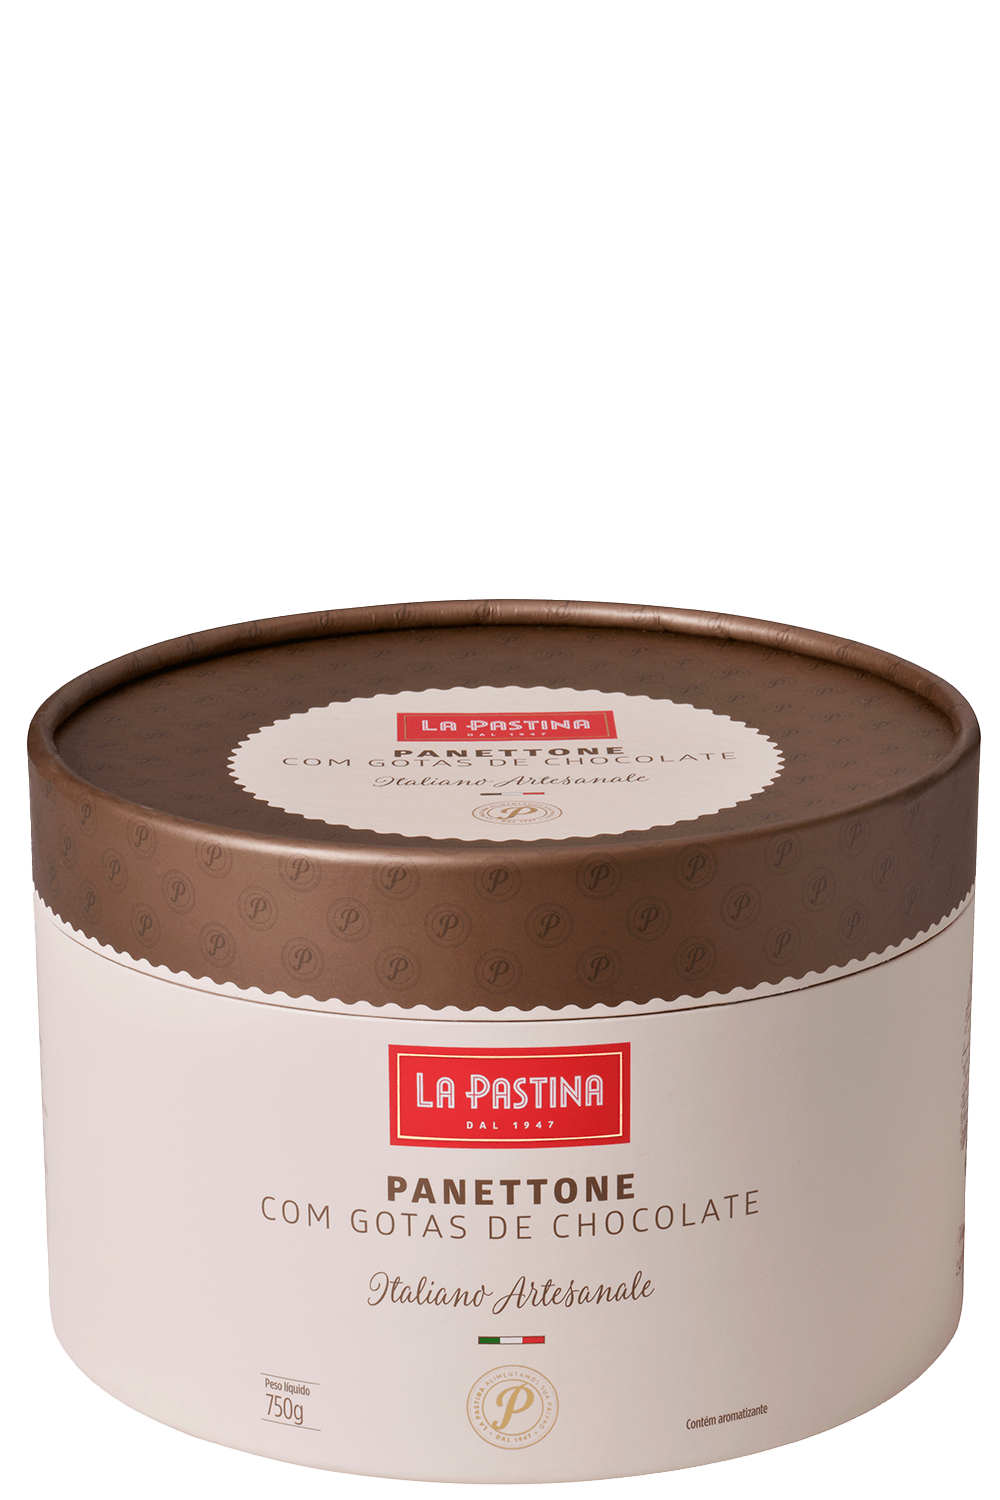 025679-PANETTONE-IT-LA-PASTINA-COM-GOTA-DE-CHOCOLATE-750G